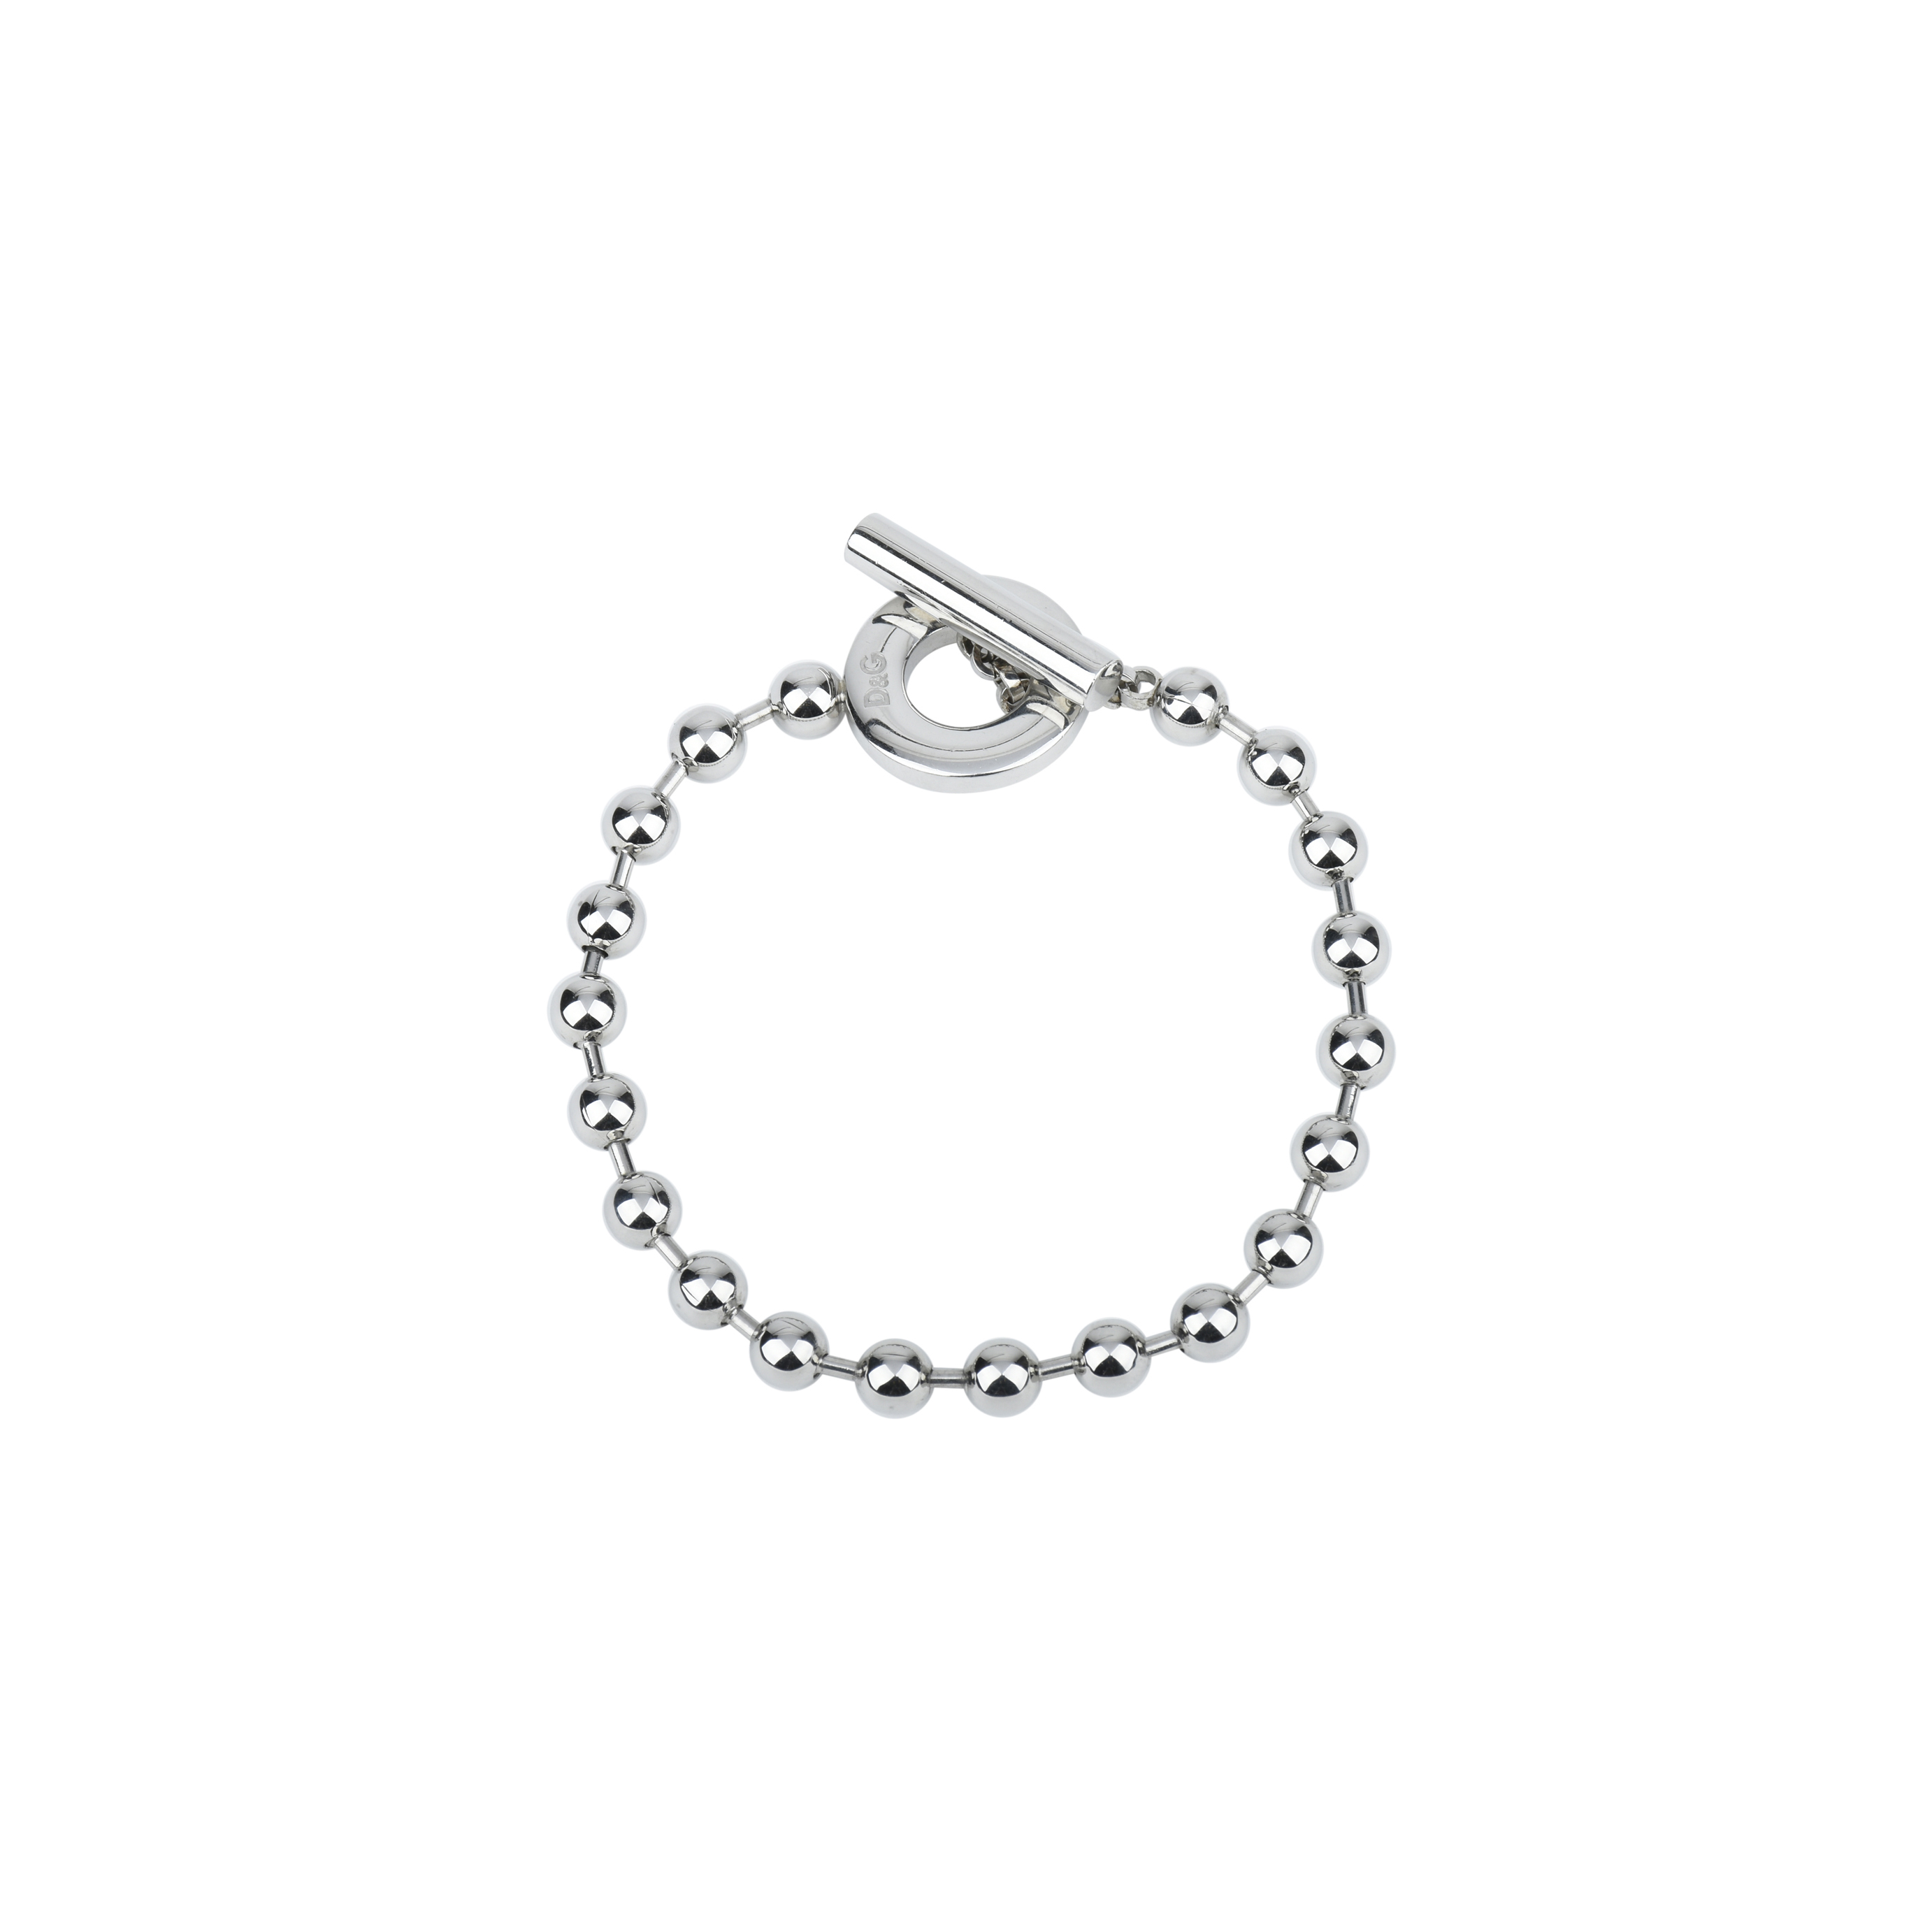 sale feshionn bracelet bracelets silver links toggle sterling products on iobi knotted